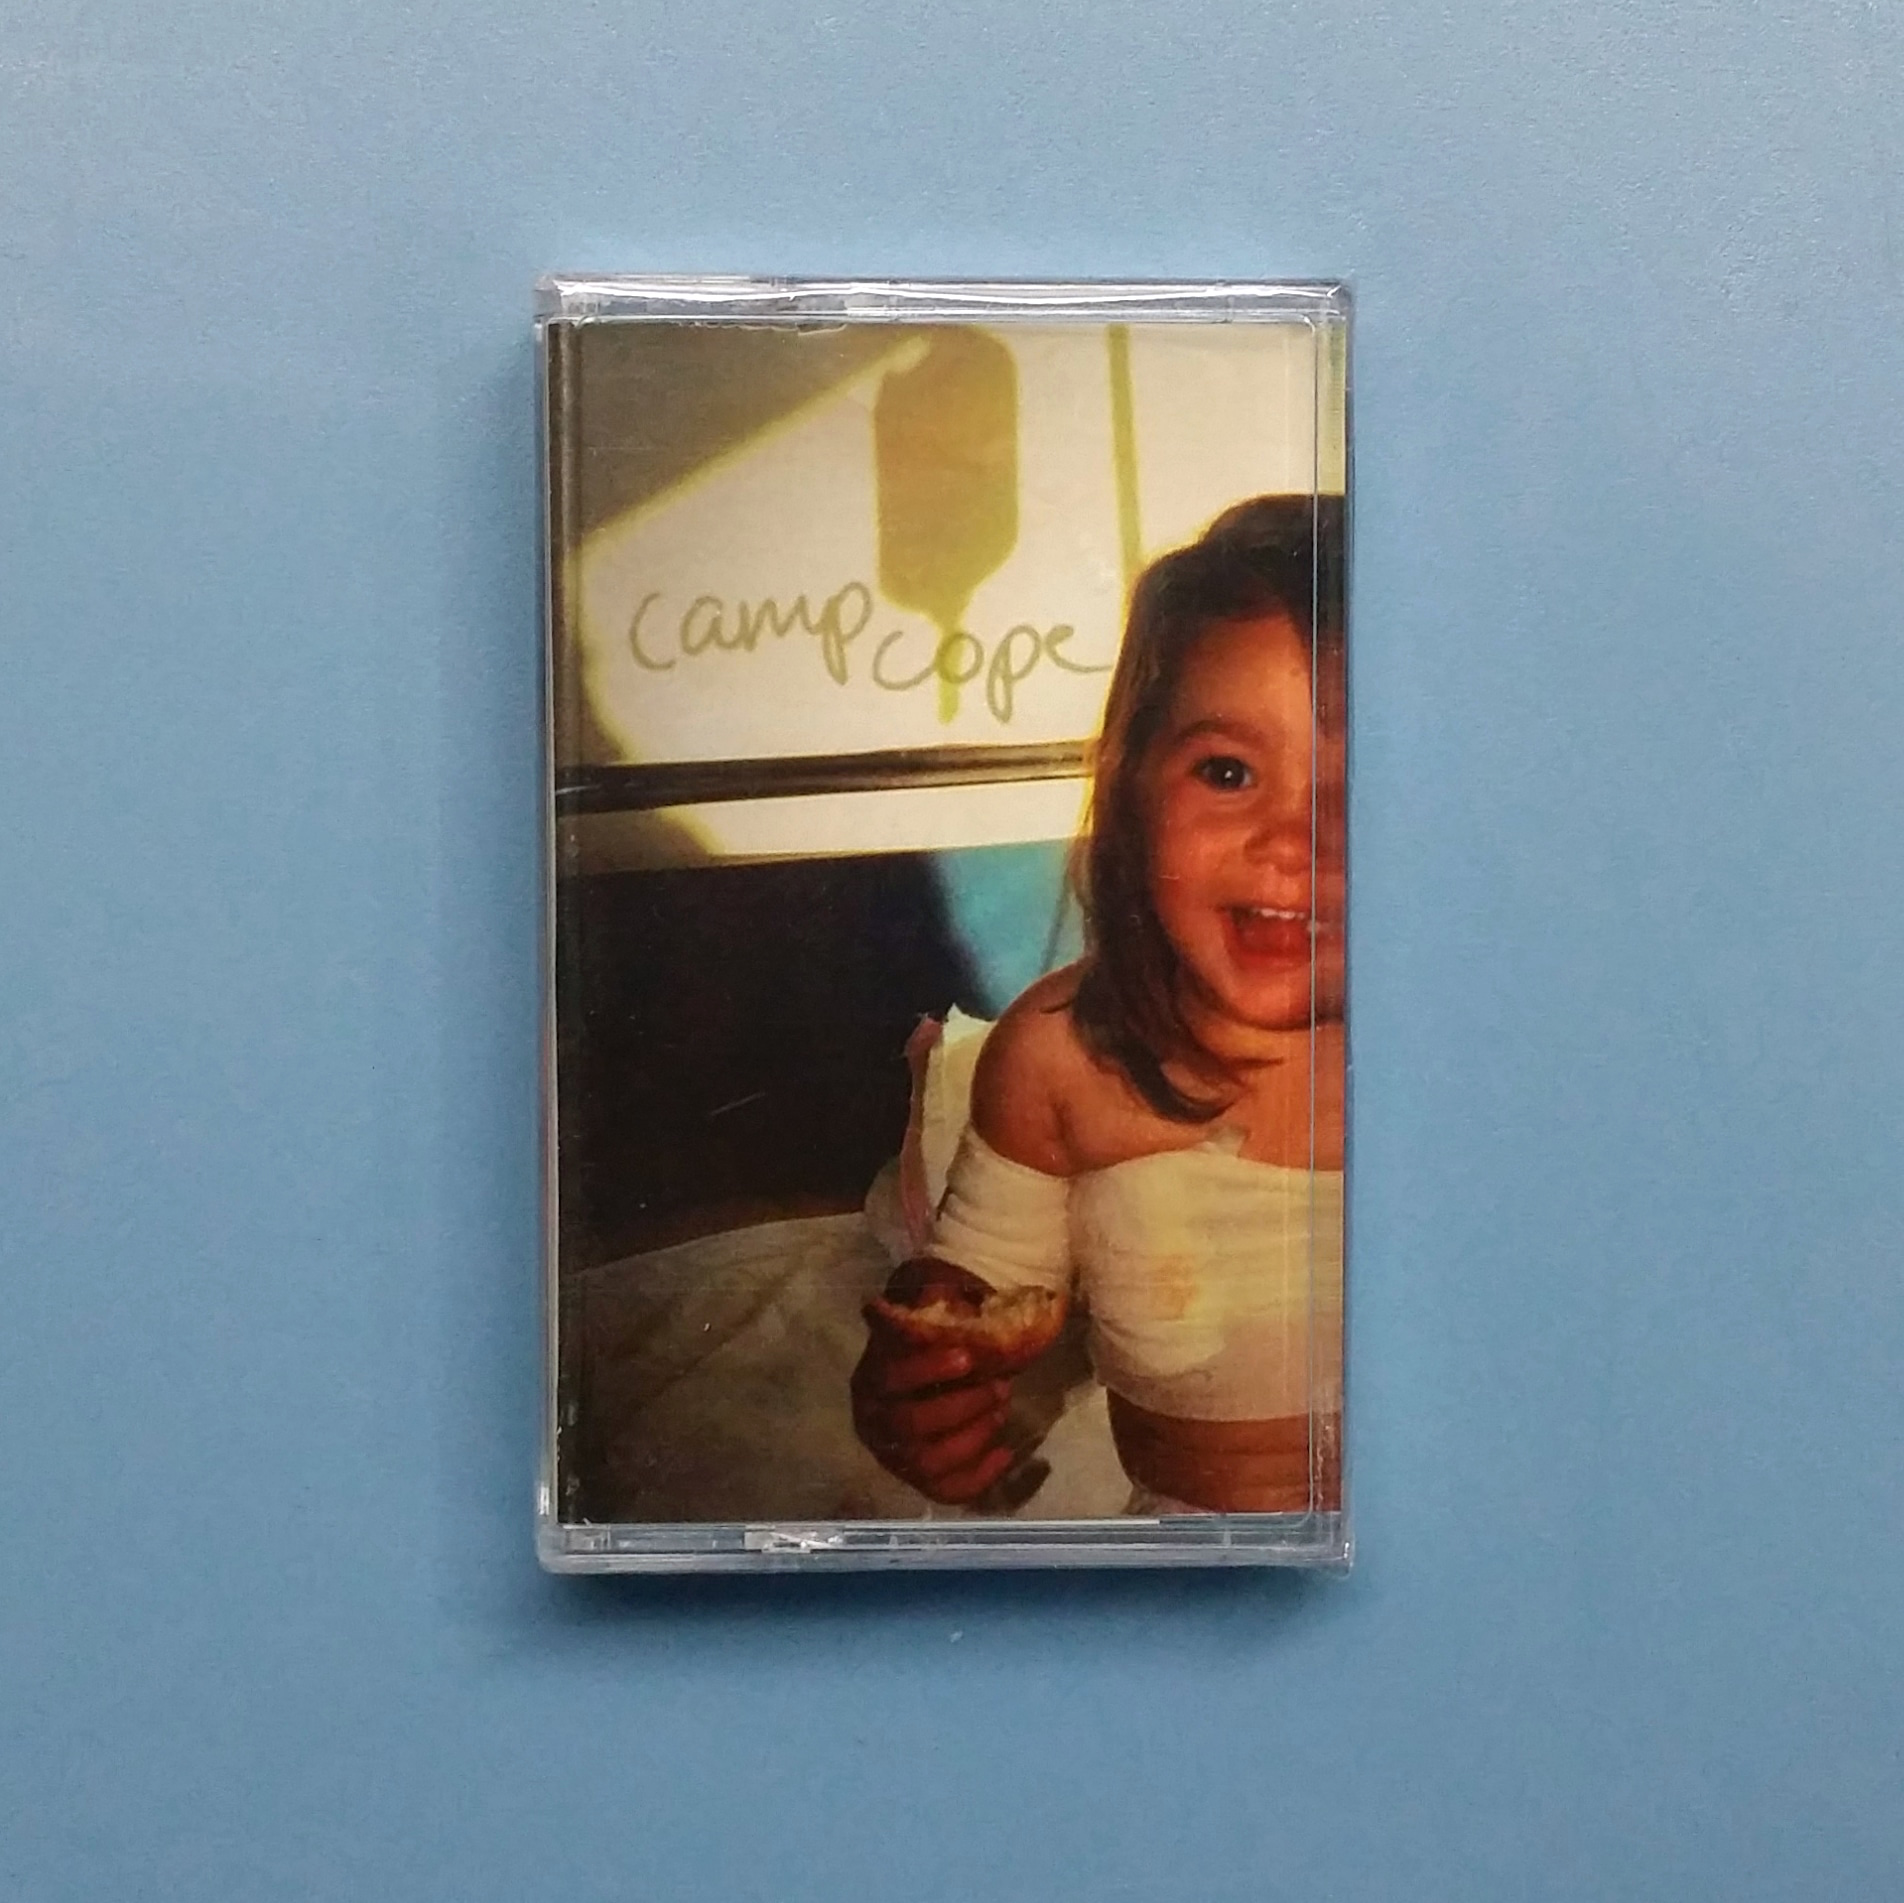 Camp Cope - Camp Cope (Run for Cover Records)